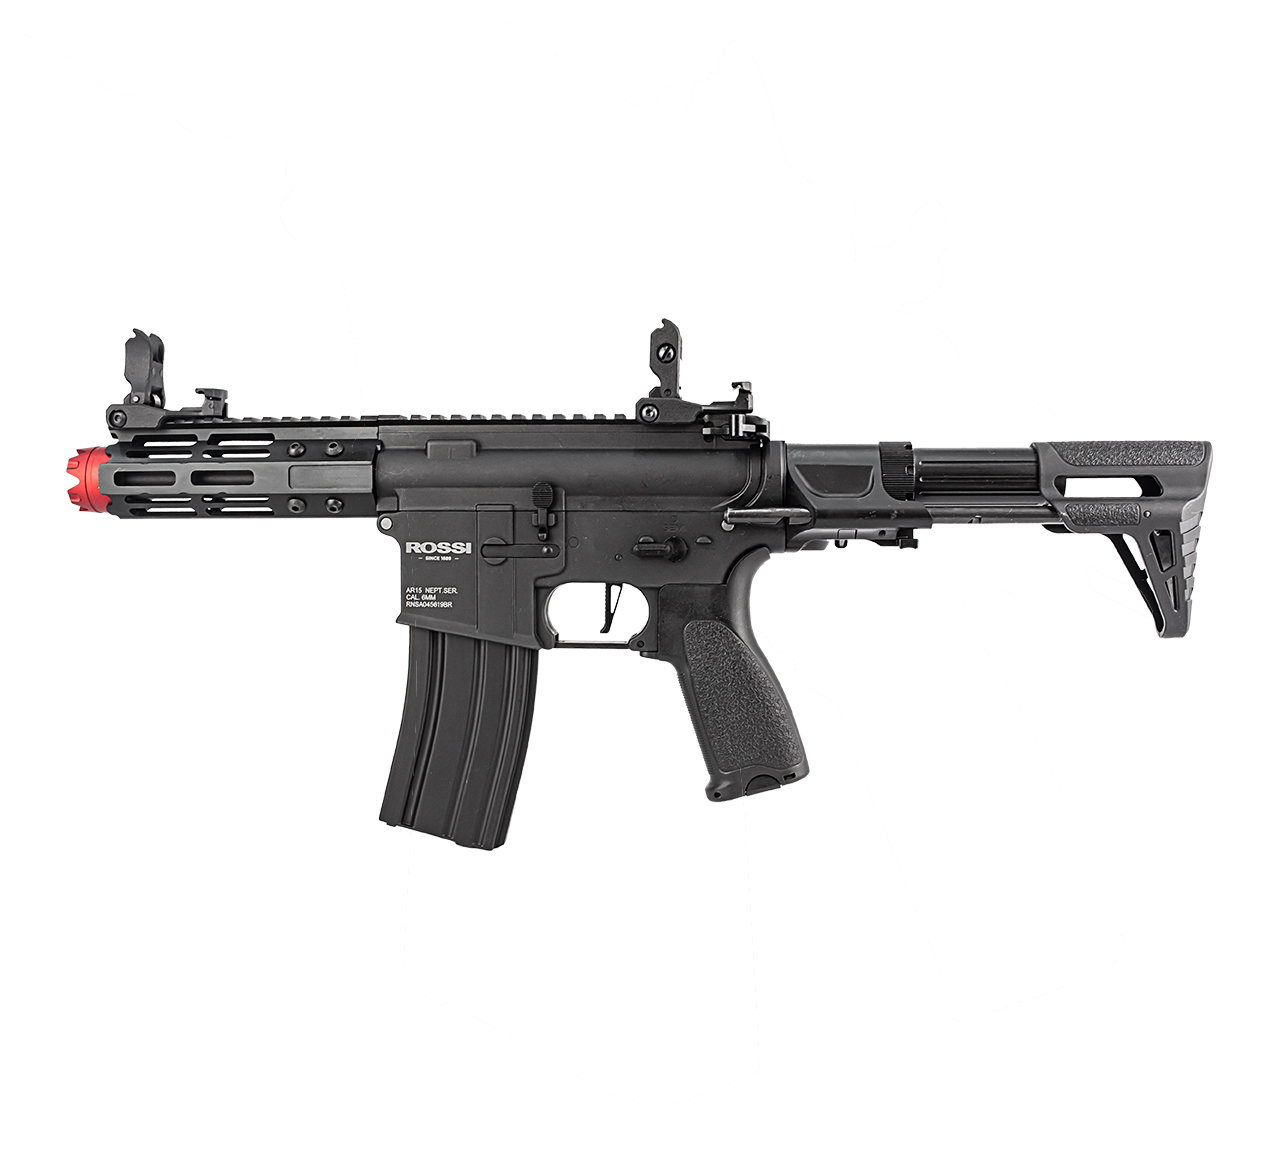 RIFLE AIRSOFT AR15 NEPTUNE KEYMOD PDW  25207687 - ROSSI